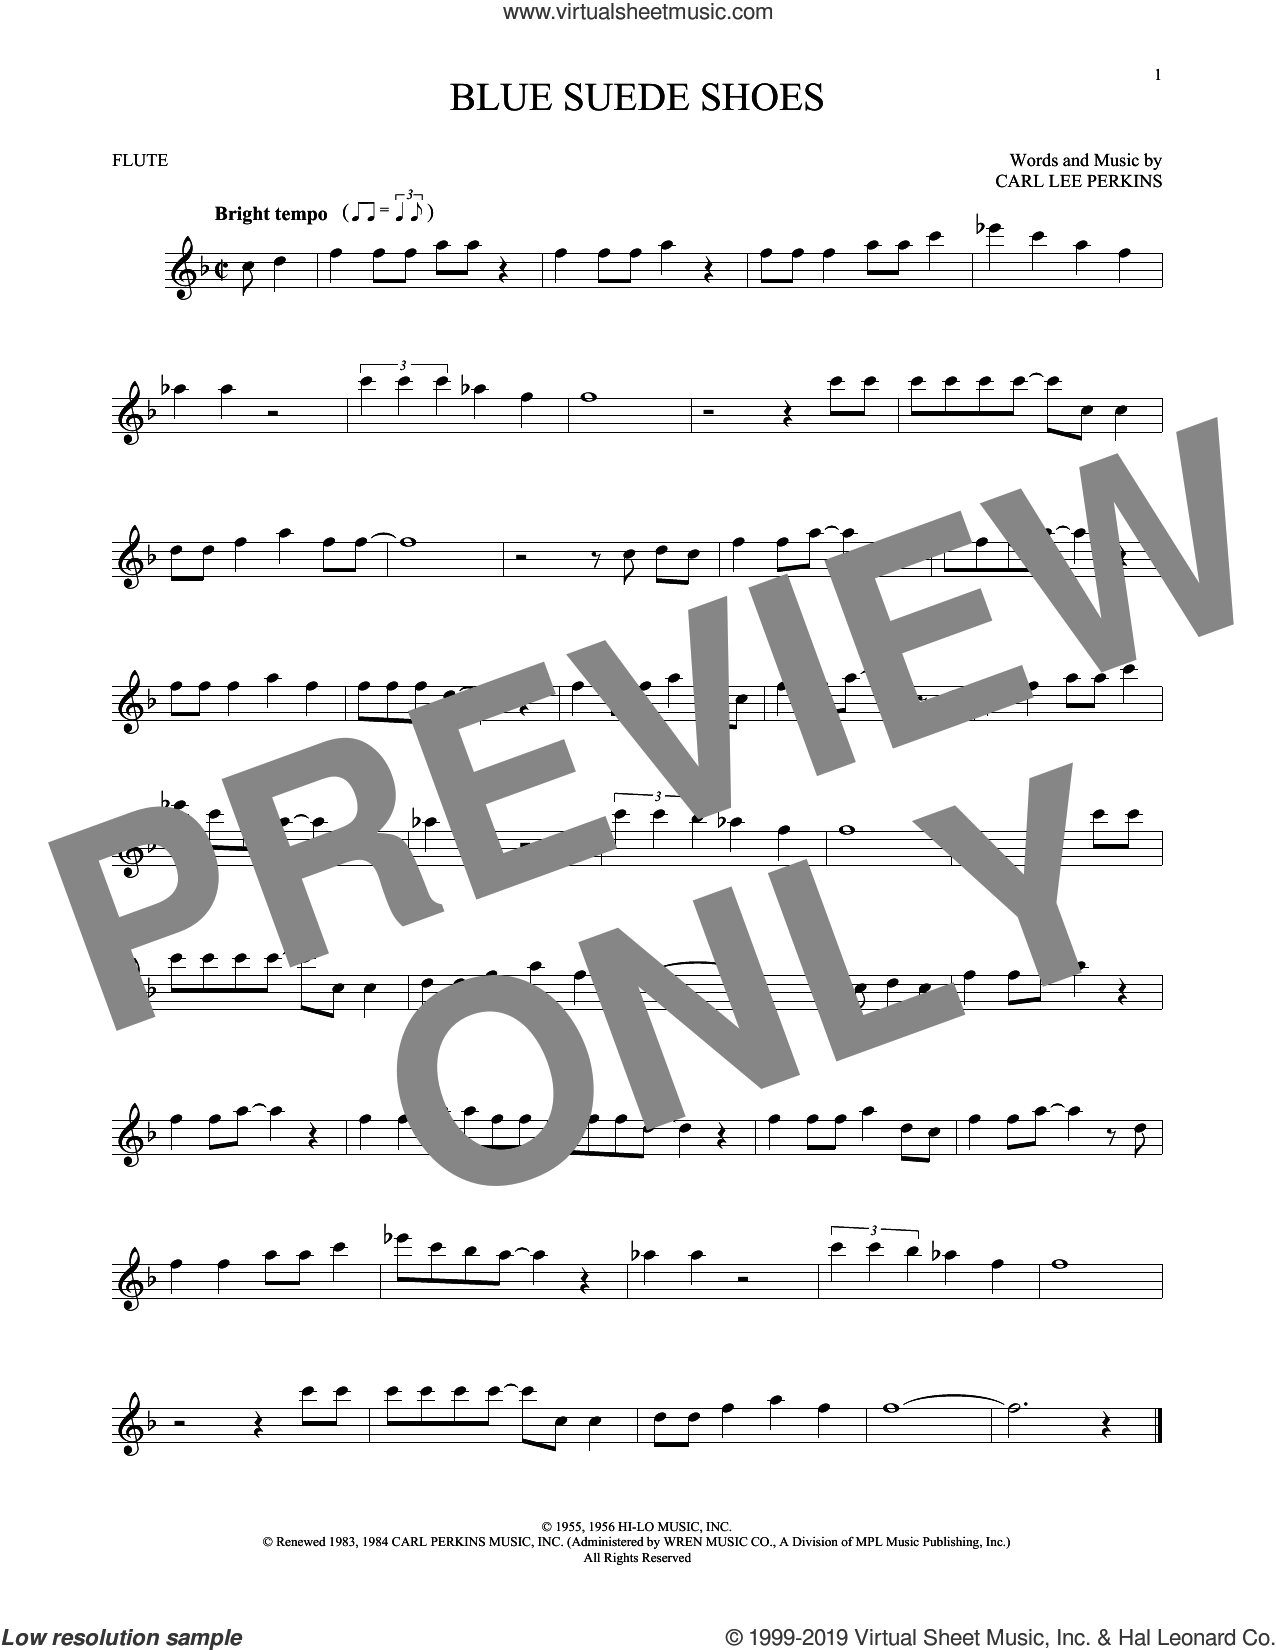 Blue Suede Shoes sheet music for flute solo by Carl Perkins and Elvis Presley, intermediate skill level